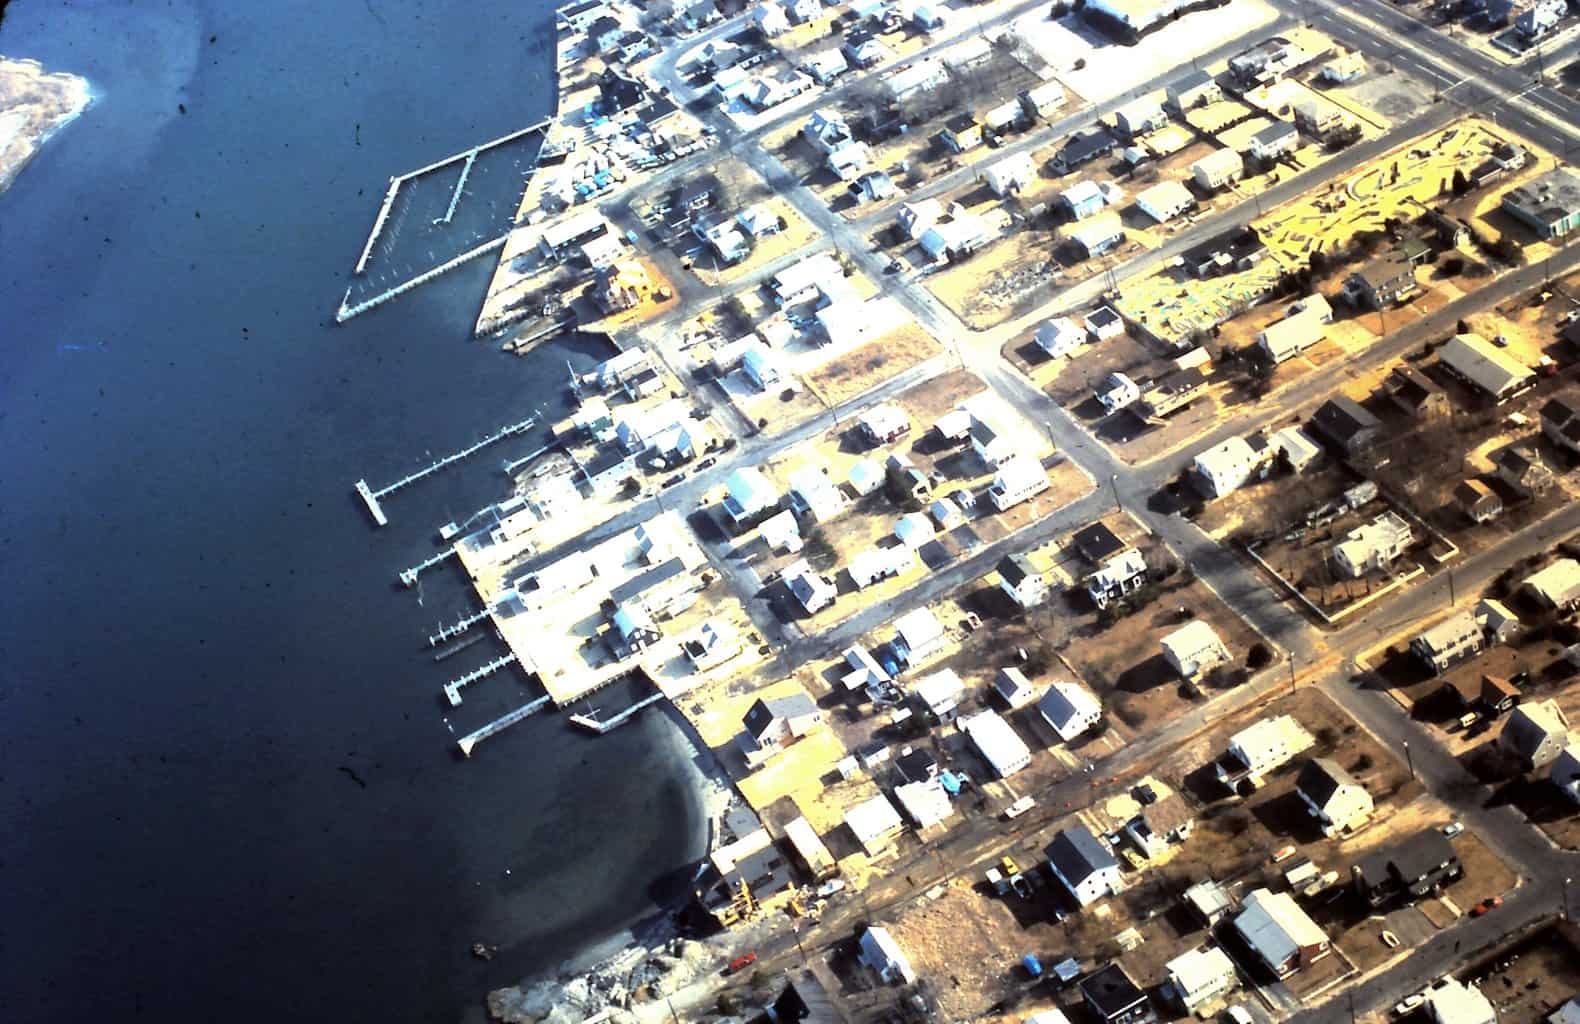 Aerial view of North Beach Haven, possibly 1980's